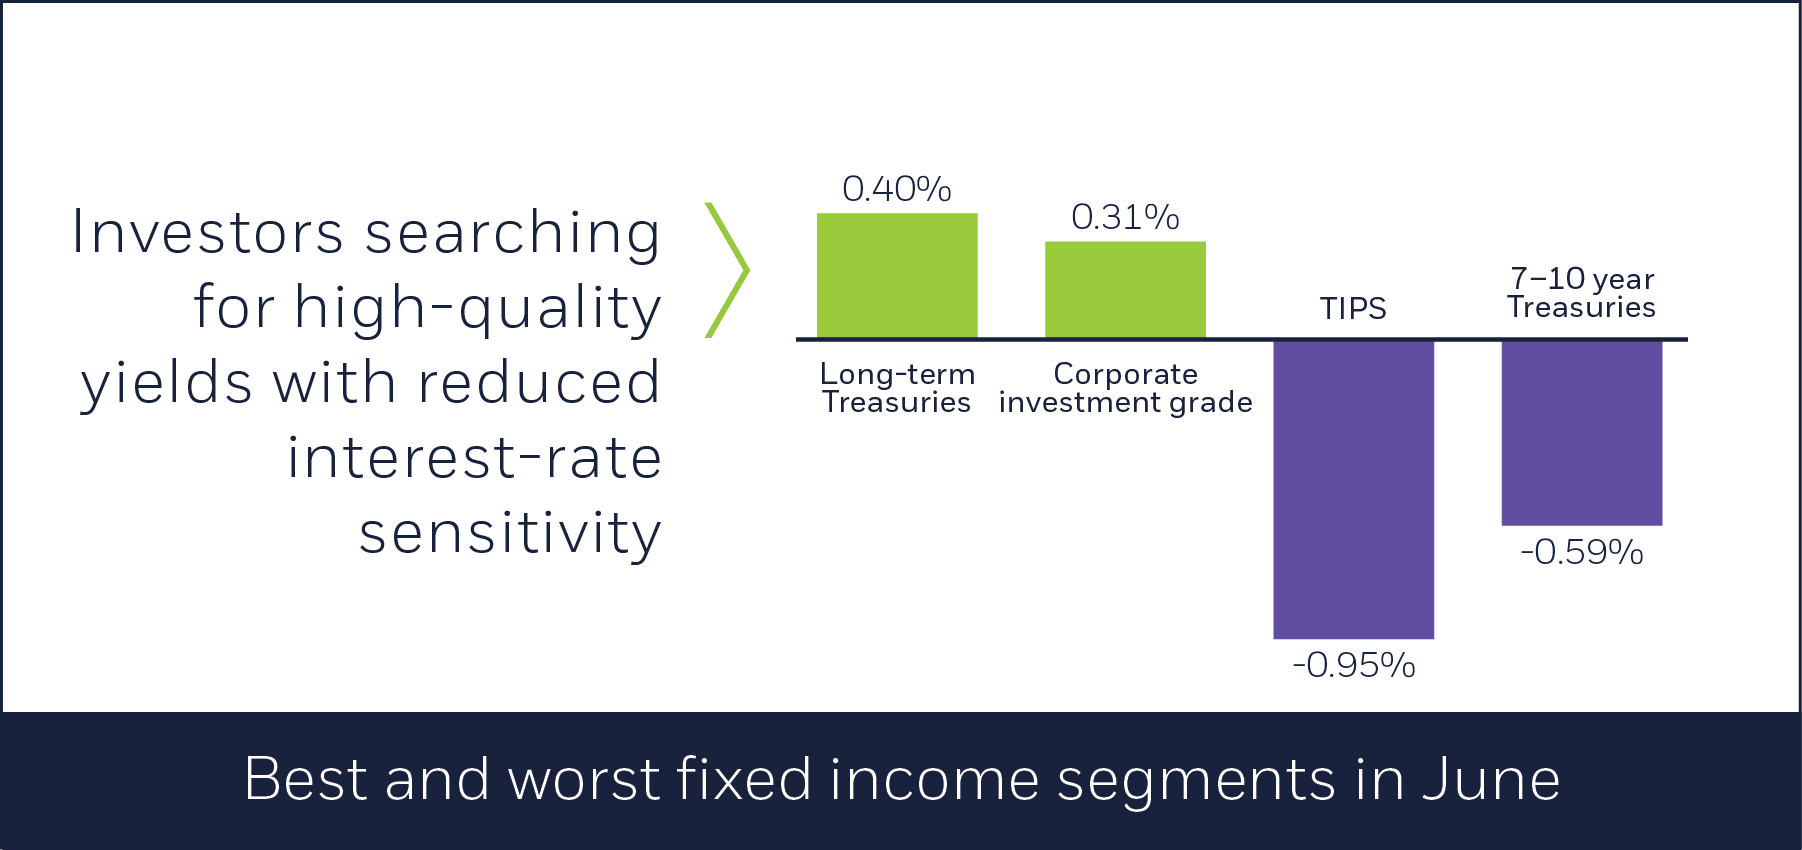 Best and worst fixed income segments in June